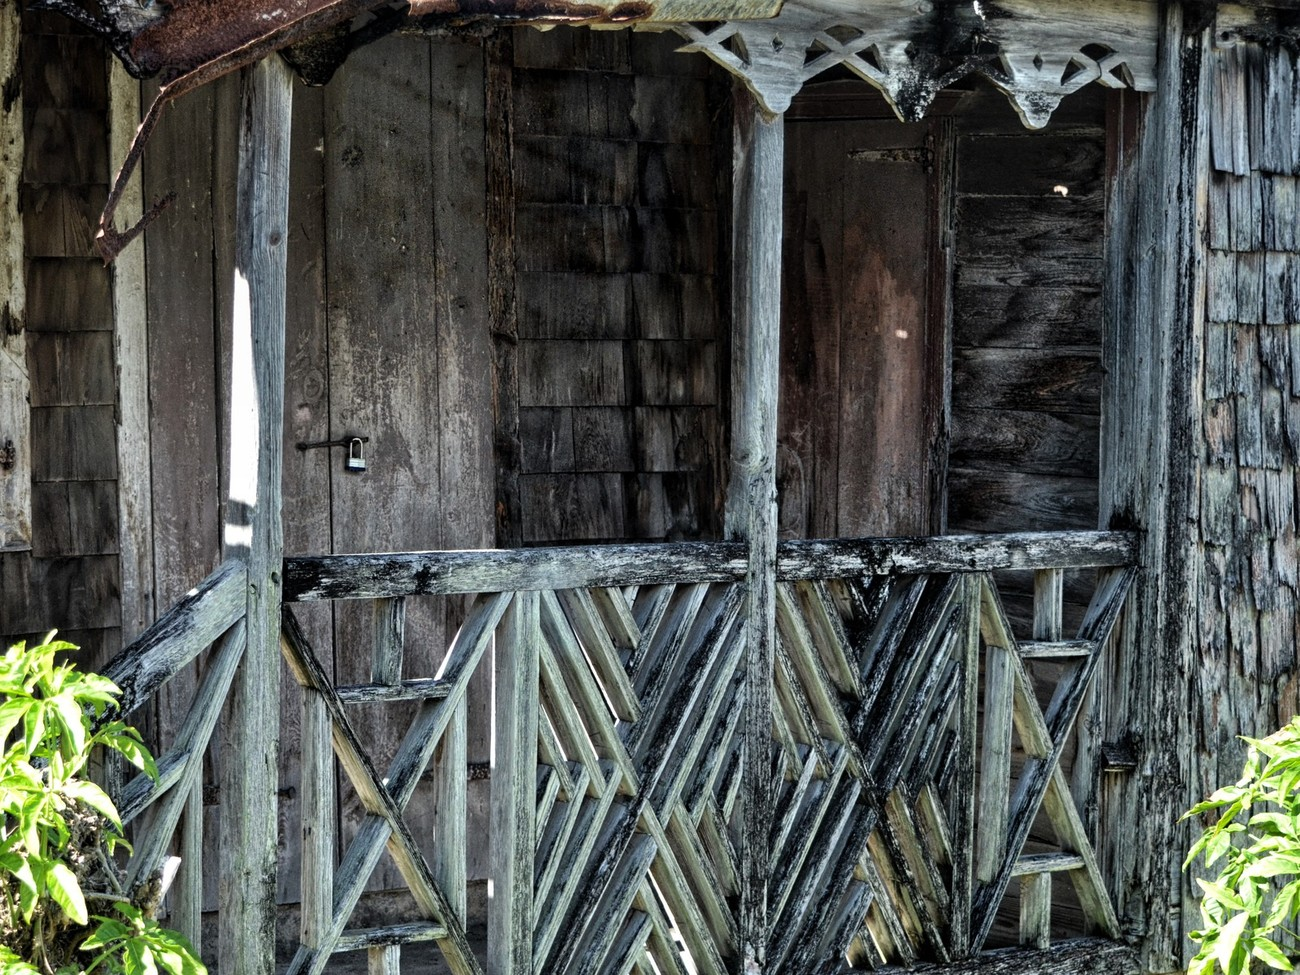 Abandoned shack on the main road in St Kitts.